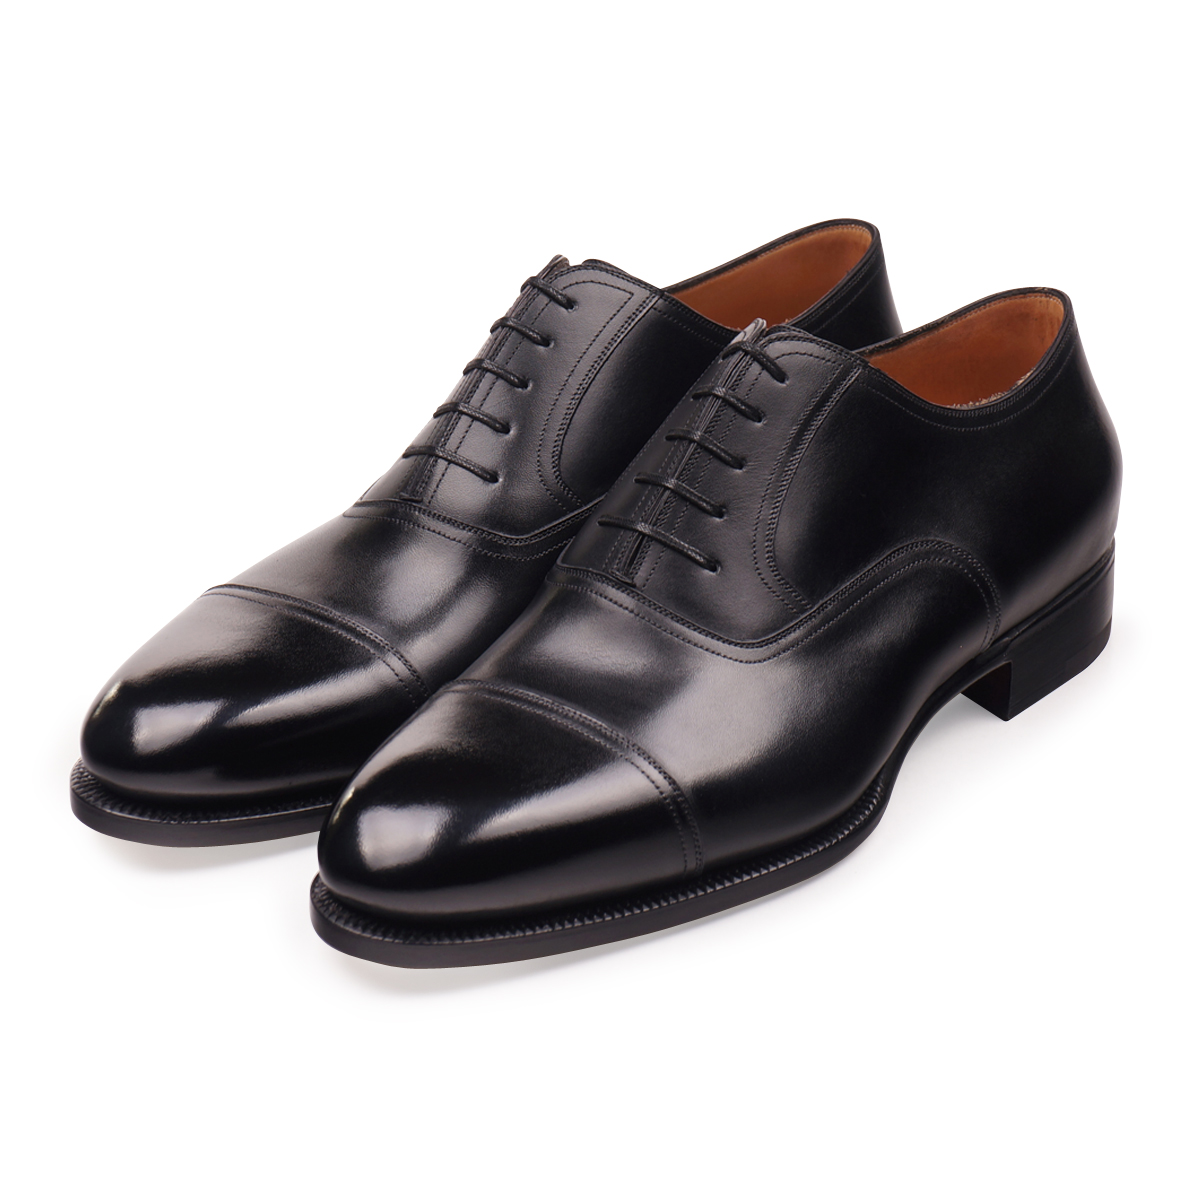 Black French Box Calf Cap Toe Oxfords